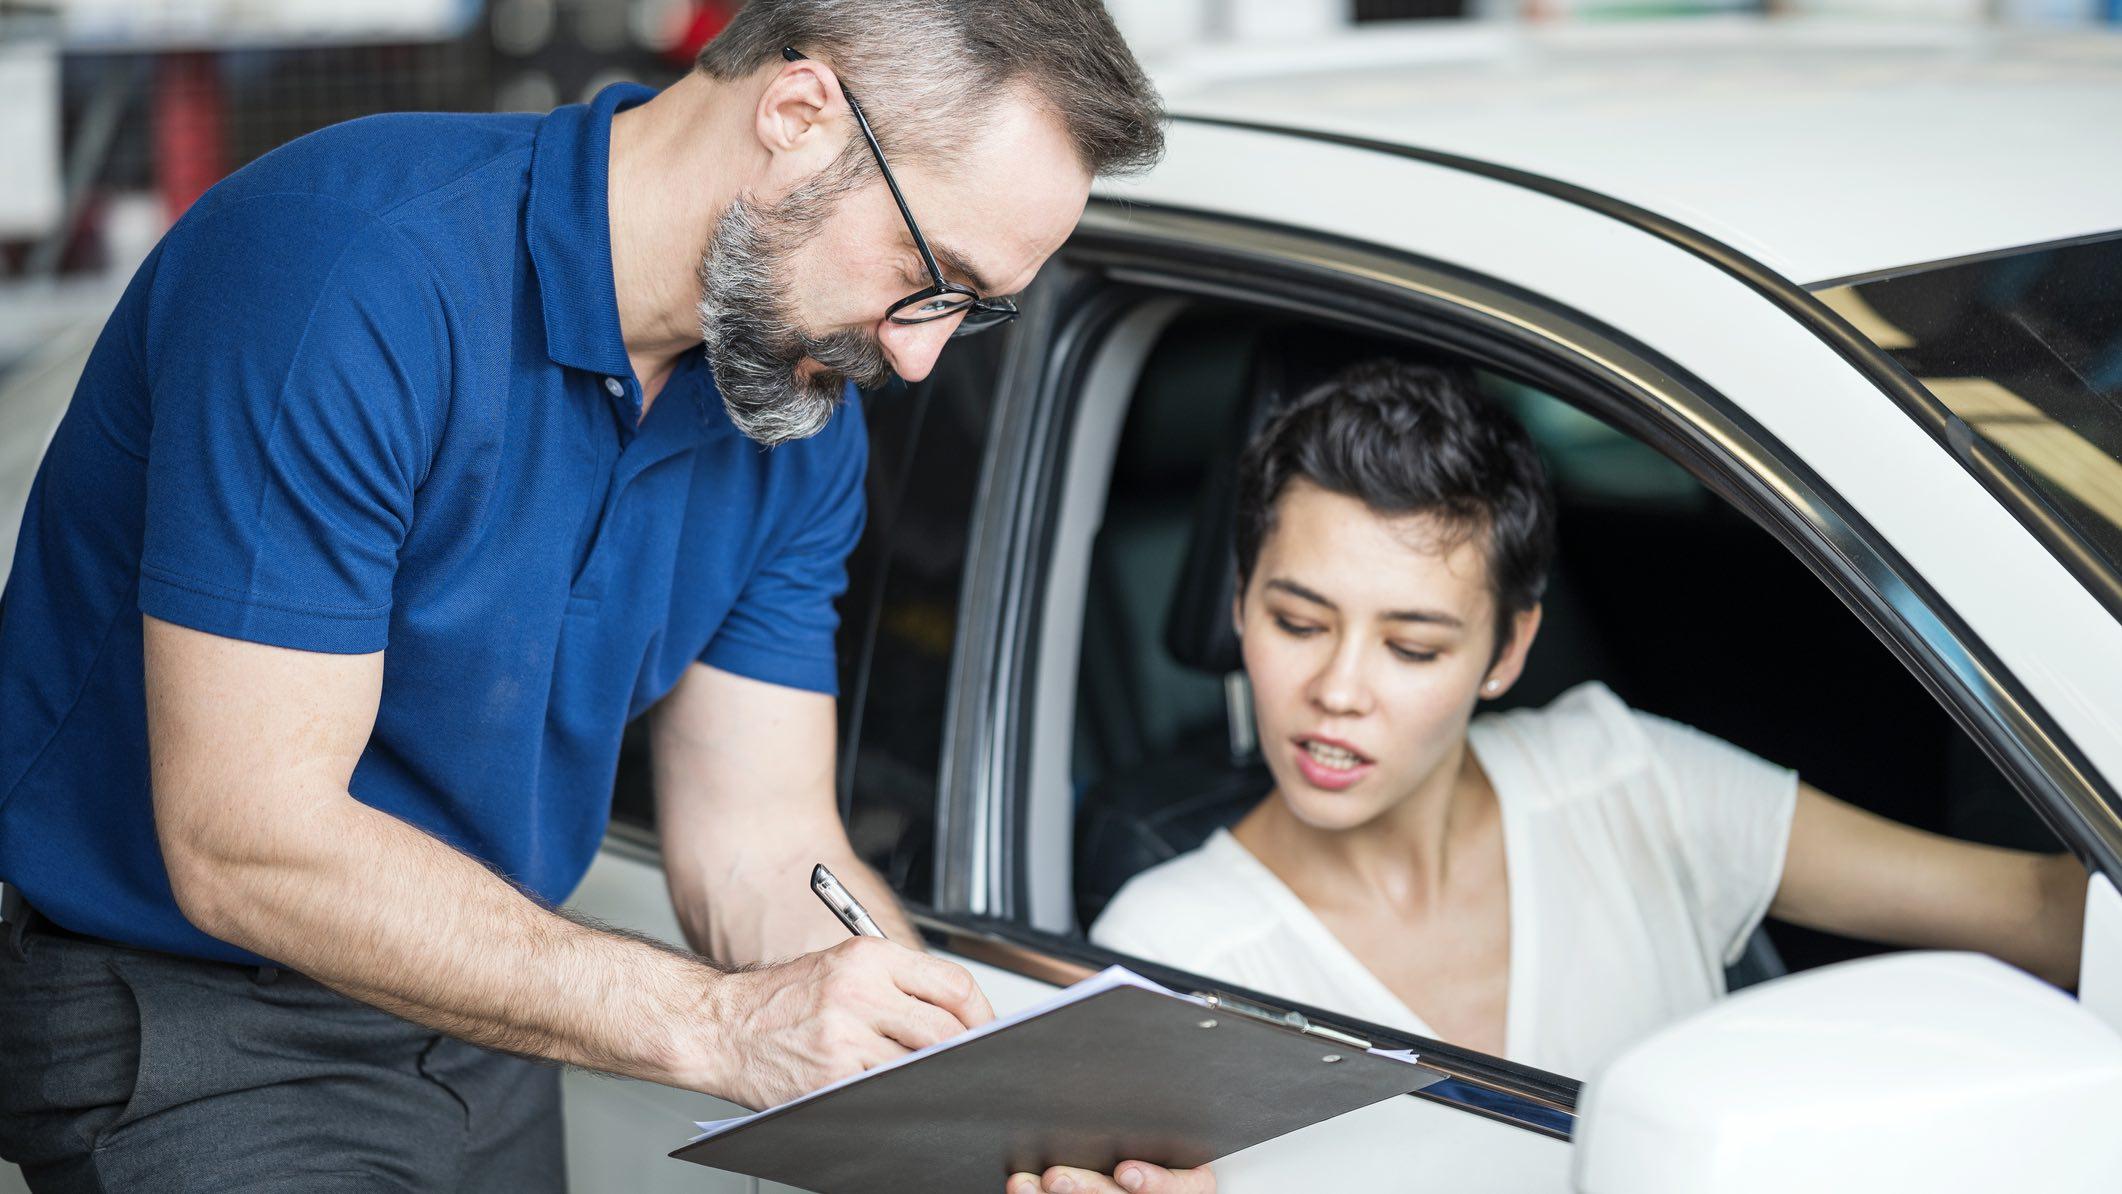 Person in car looking worried at at life insurance documents offered by salesperson.